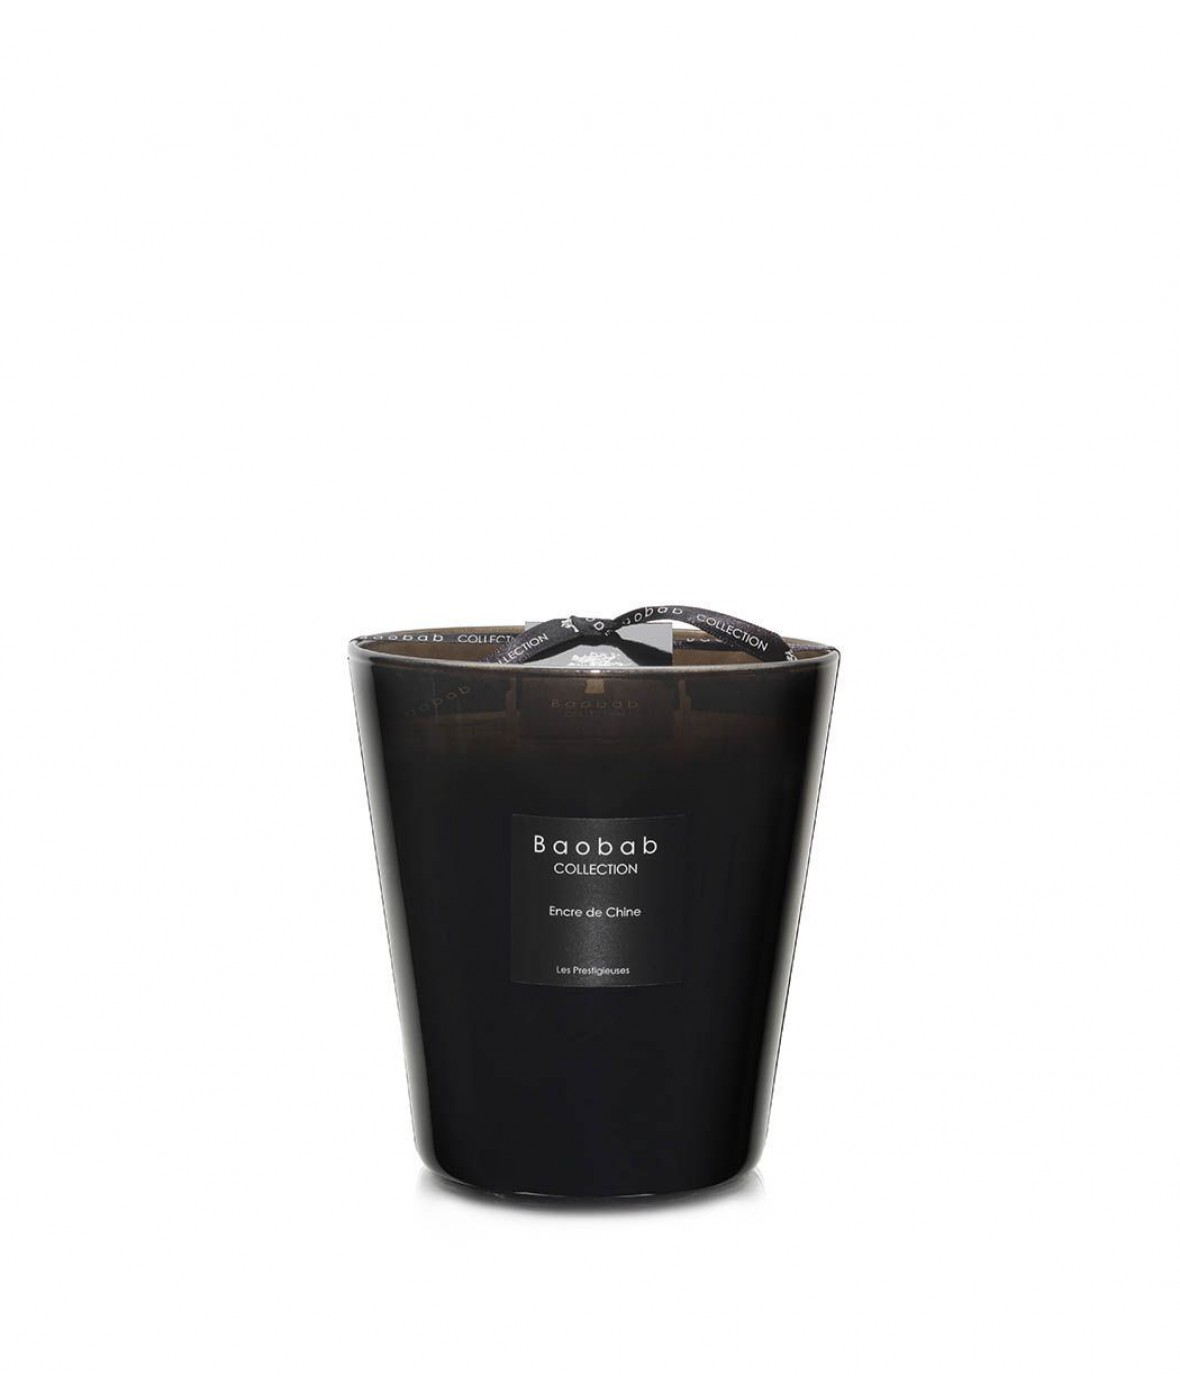 Baobap Scented Candle Encre De Chine (Large)